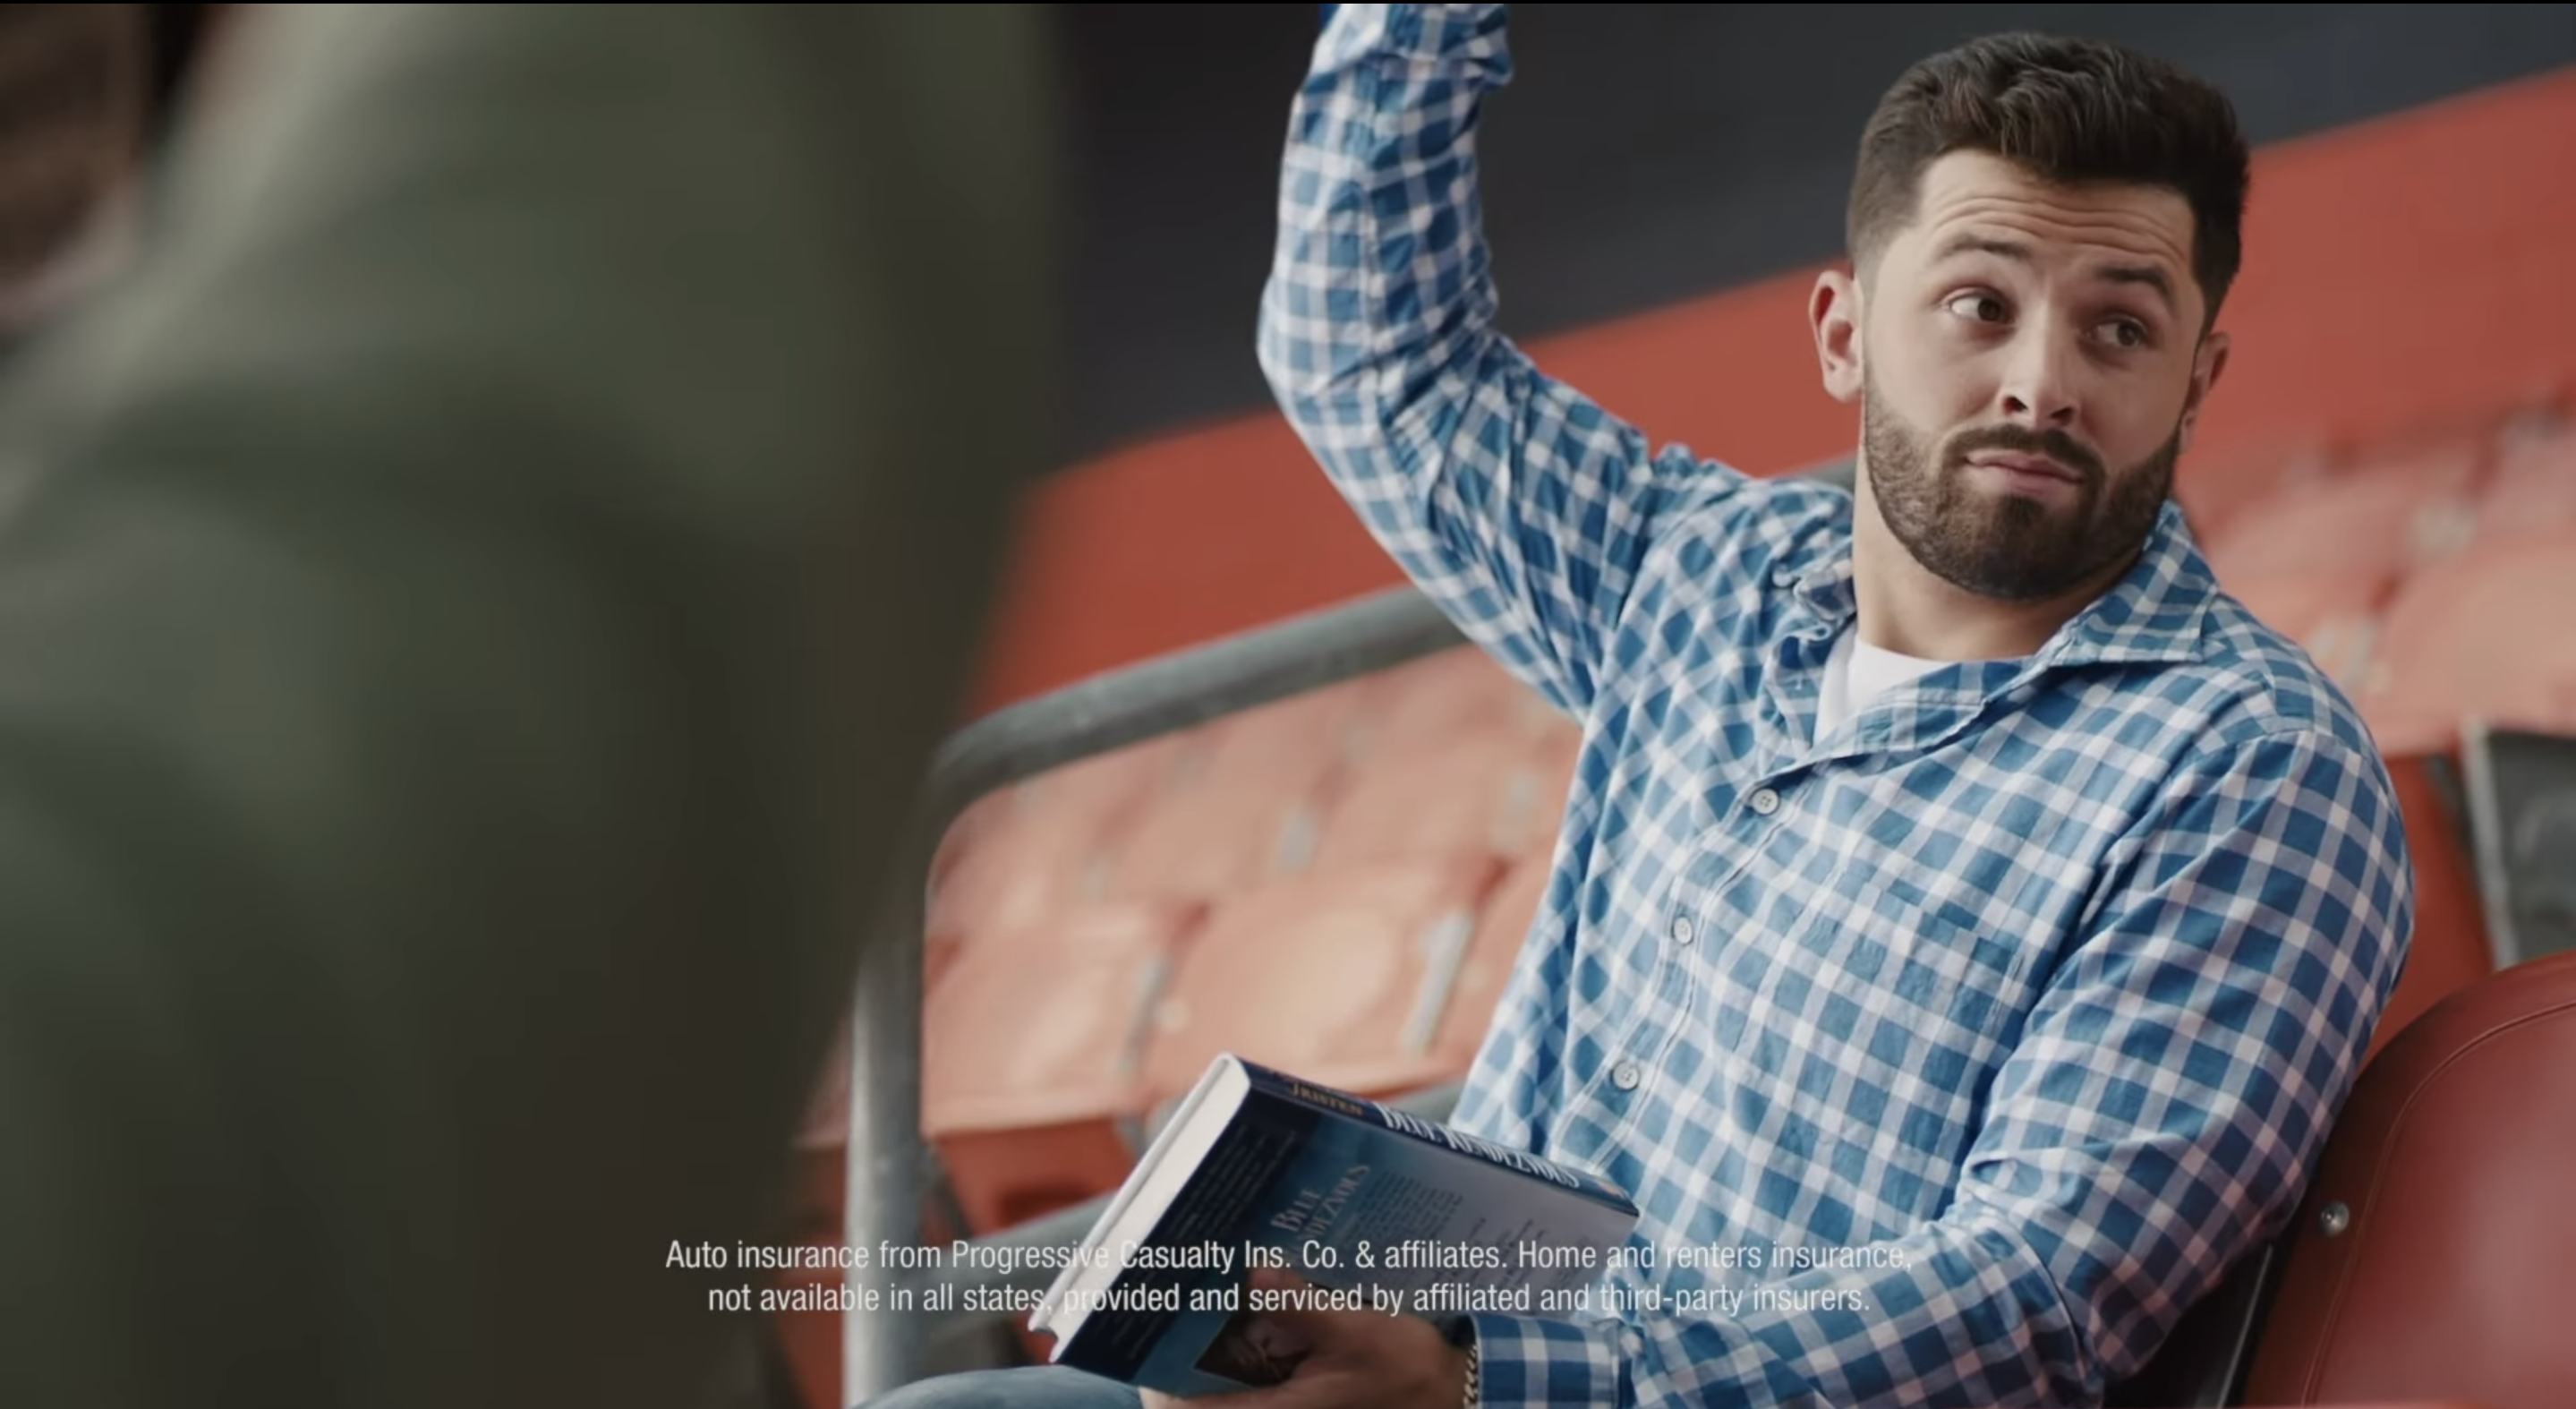 You're Going to See Lots of Insurance Ads Featuring NFL Quarterbacks Throughout the Playoffs